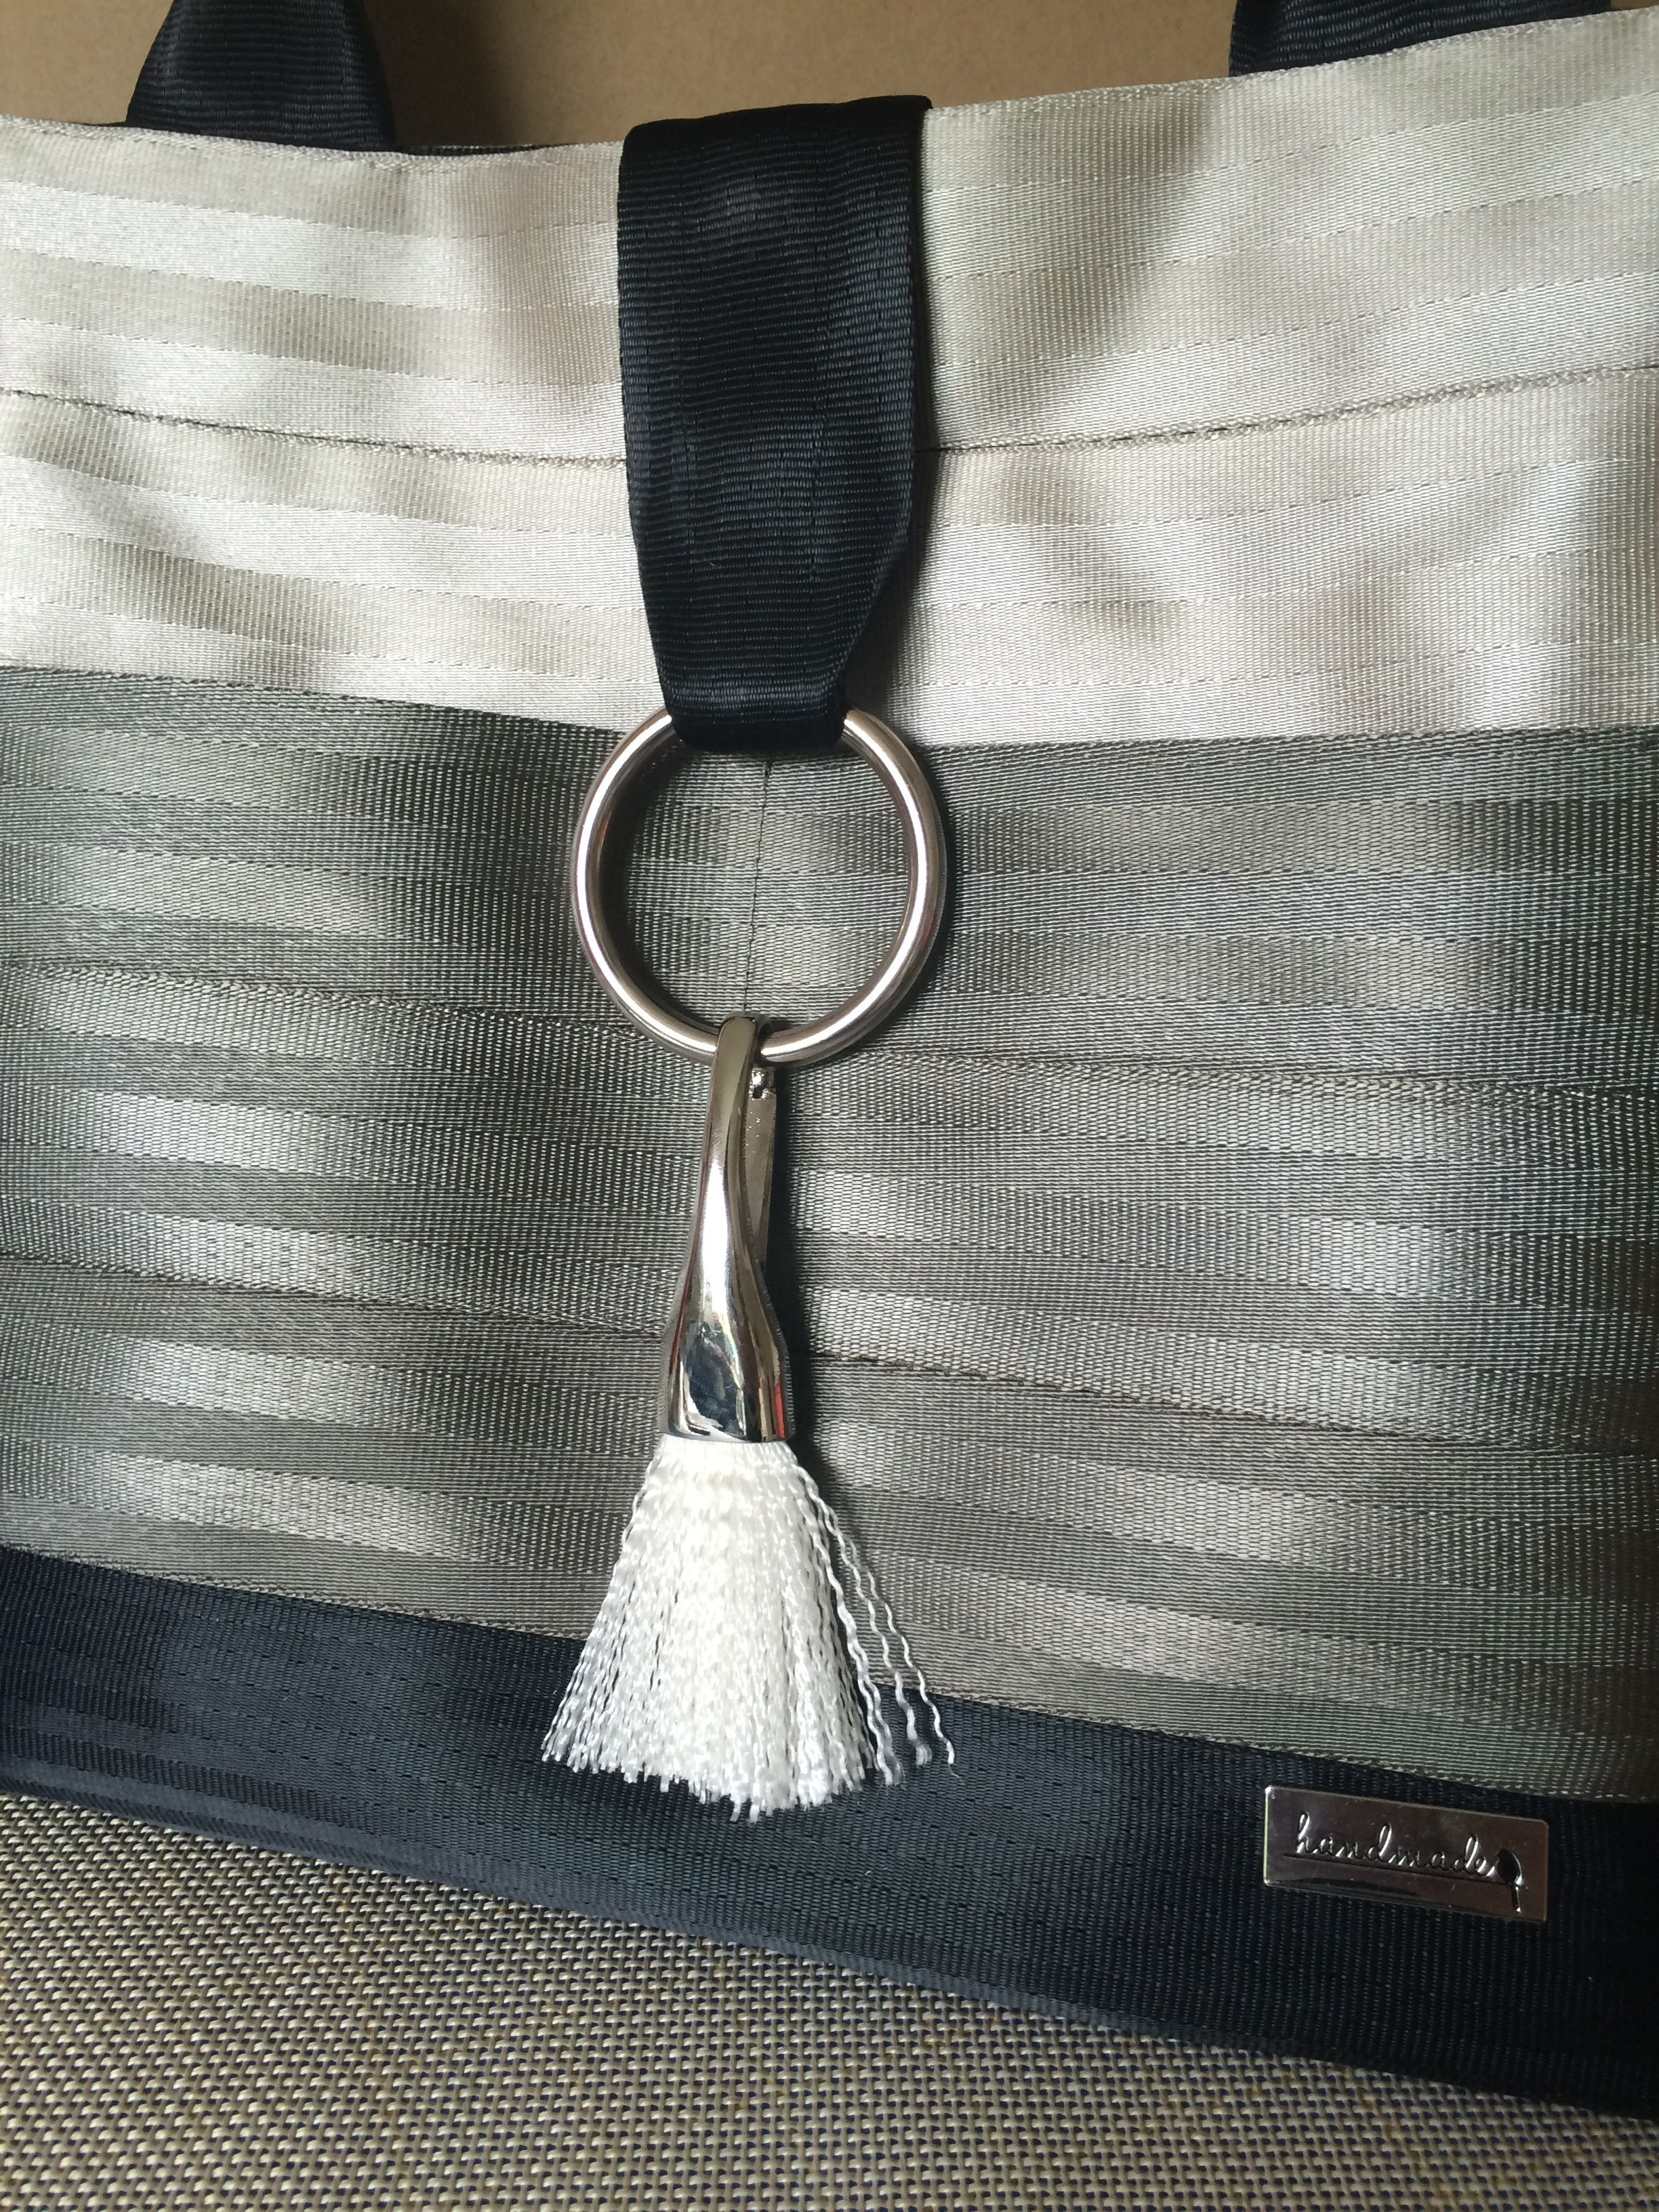 Tutorial: How to make a Sleek Drop Tassel with Seat Belt Webbing